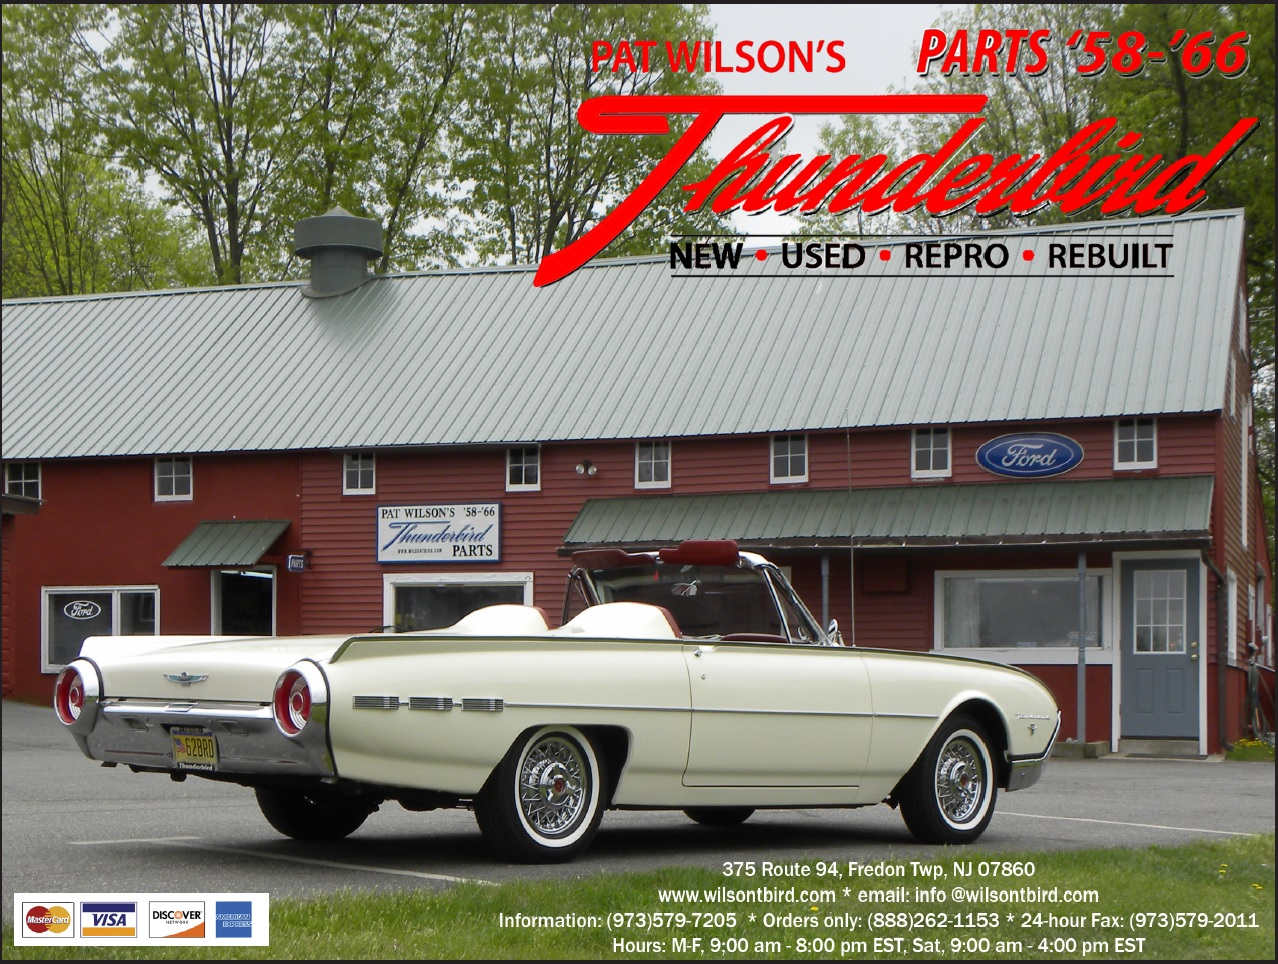 Pat Wilson's Thunderbird Parts 2019 Catalog